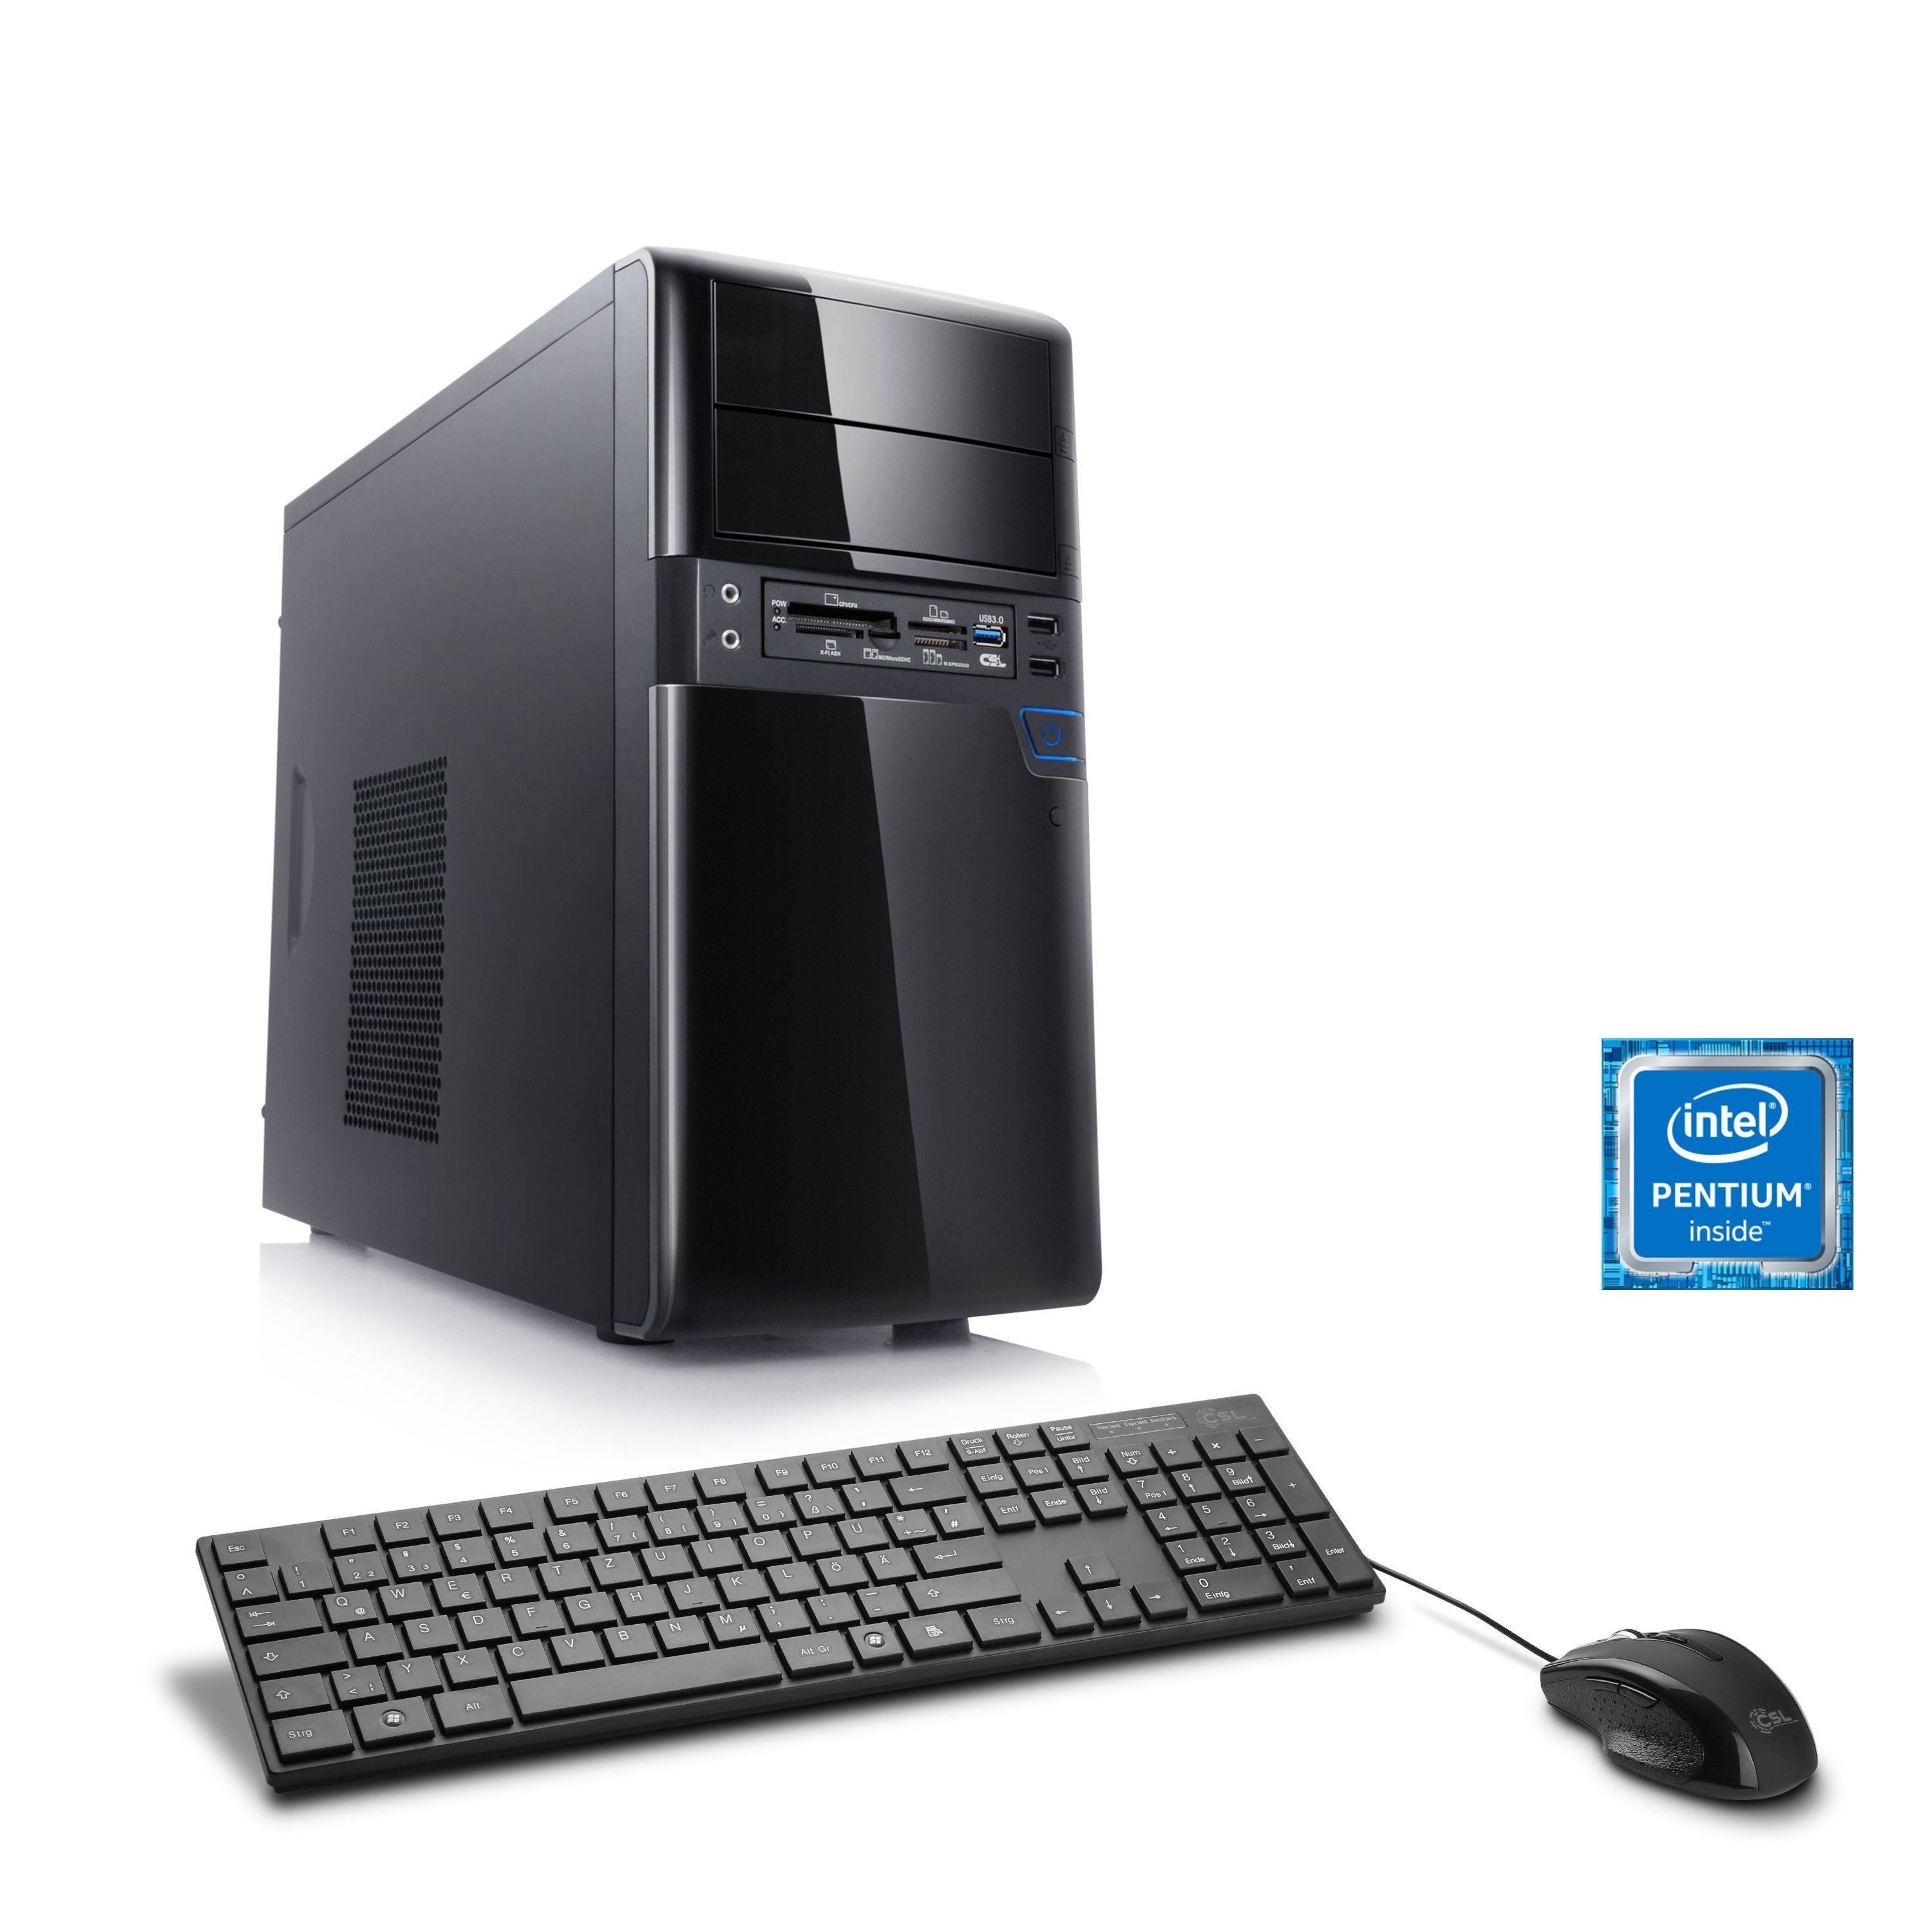 CSL Multimedia PC | Pentium G4560 | Intel HD 610 | 4 GB RAM »Speed T3411 Windows 10 Home«